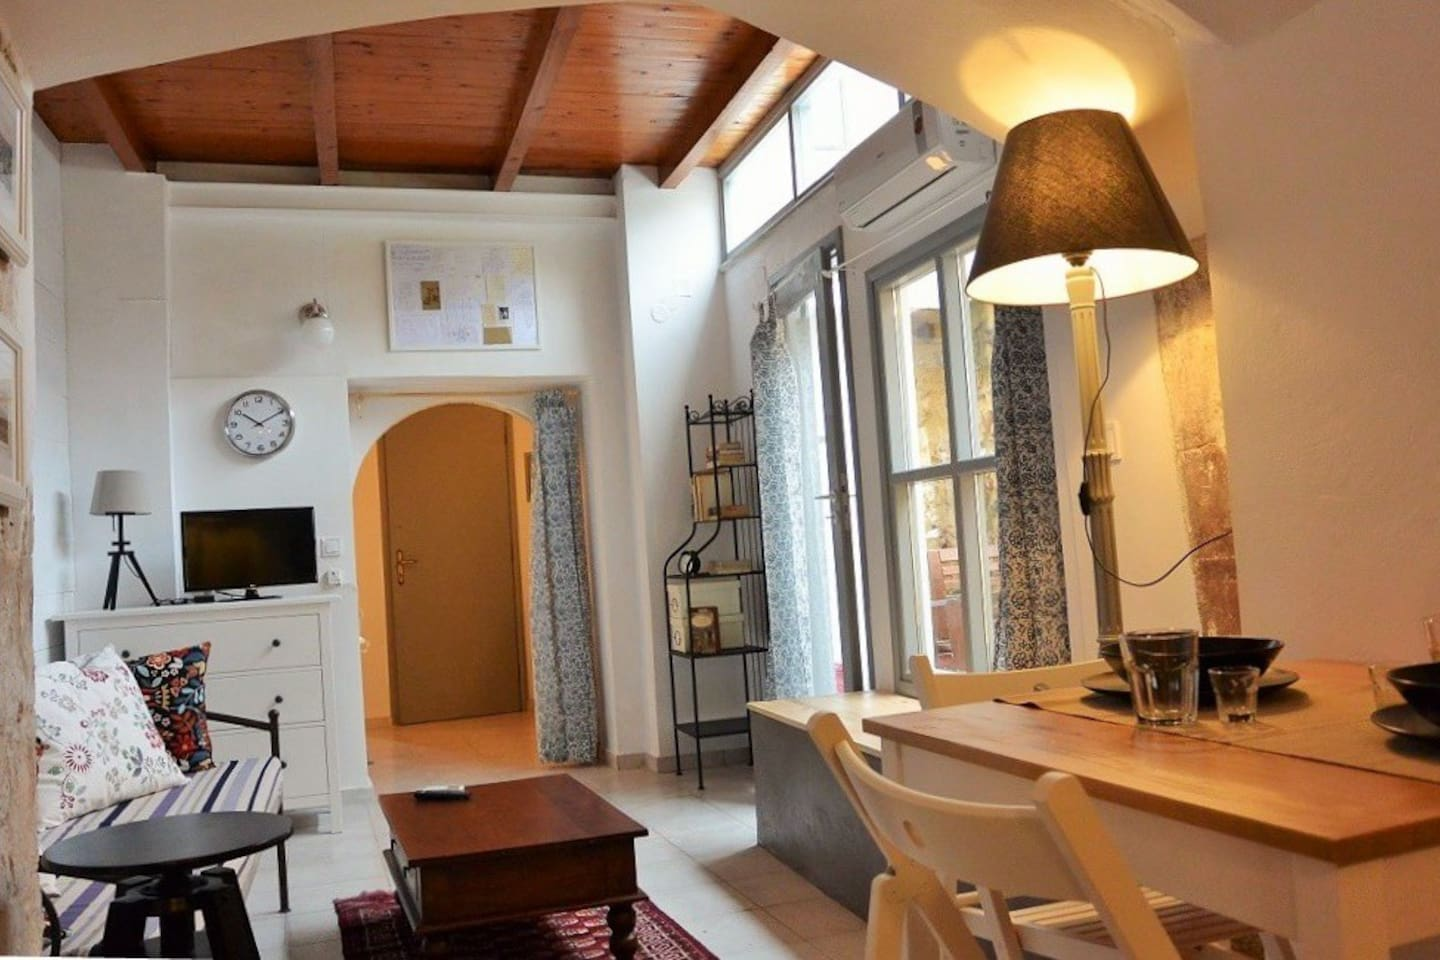 A charming apartment, just renovated and tastefully decorated. Centrally located but yet secluded in a small street.